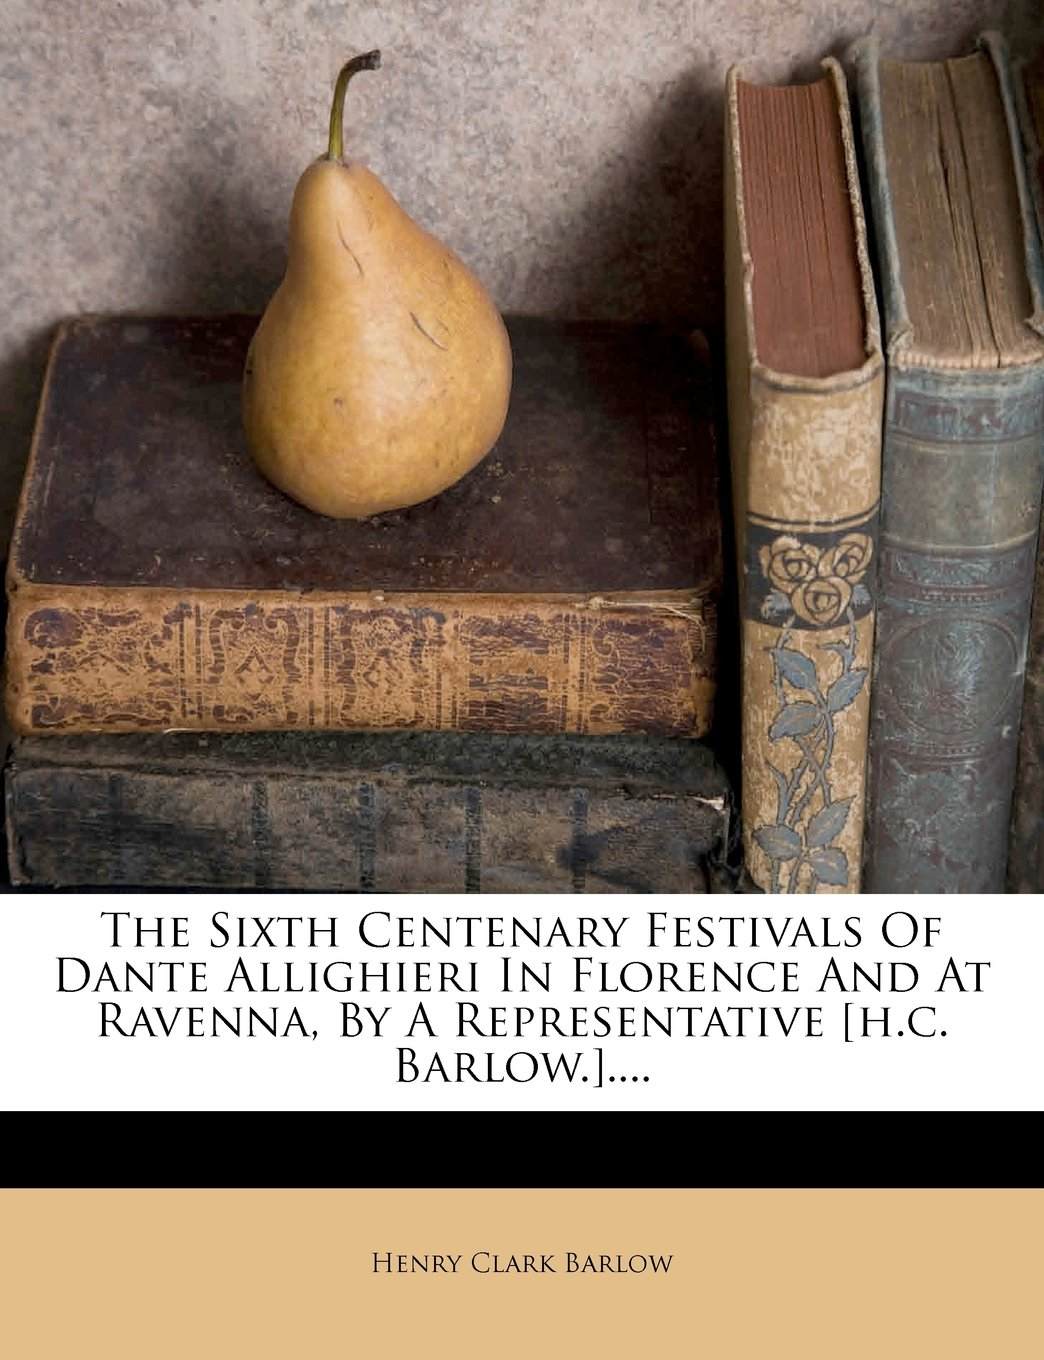 Download The Sixth Centenary Festivals Of Dante Allighieri In Florence And At Ravenna, By A Representative [h.c. Barlow.].... PDF